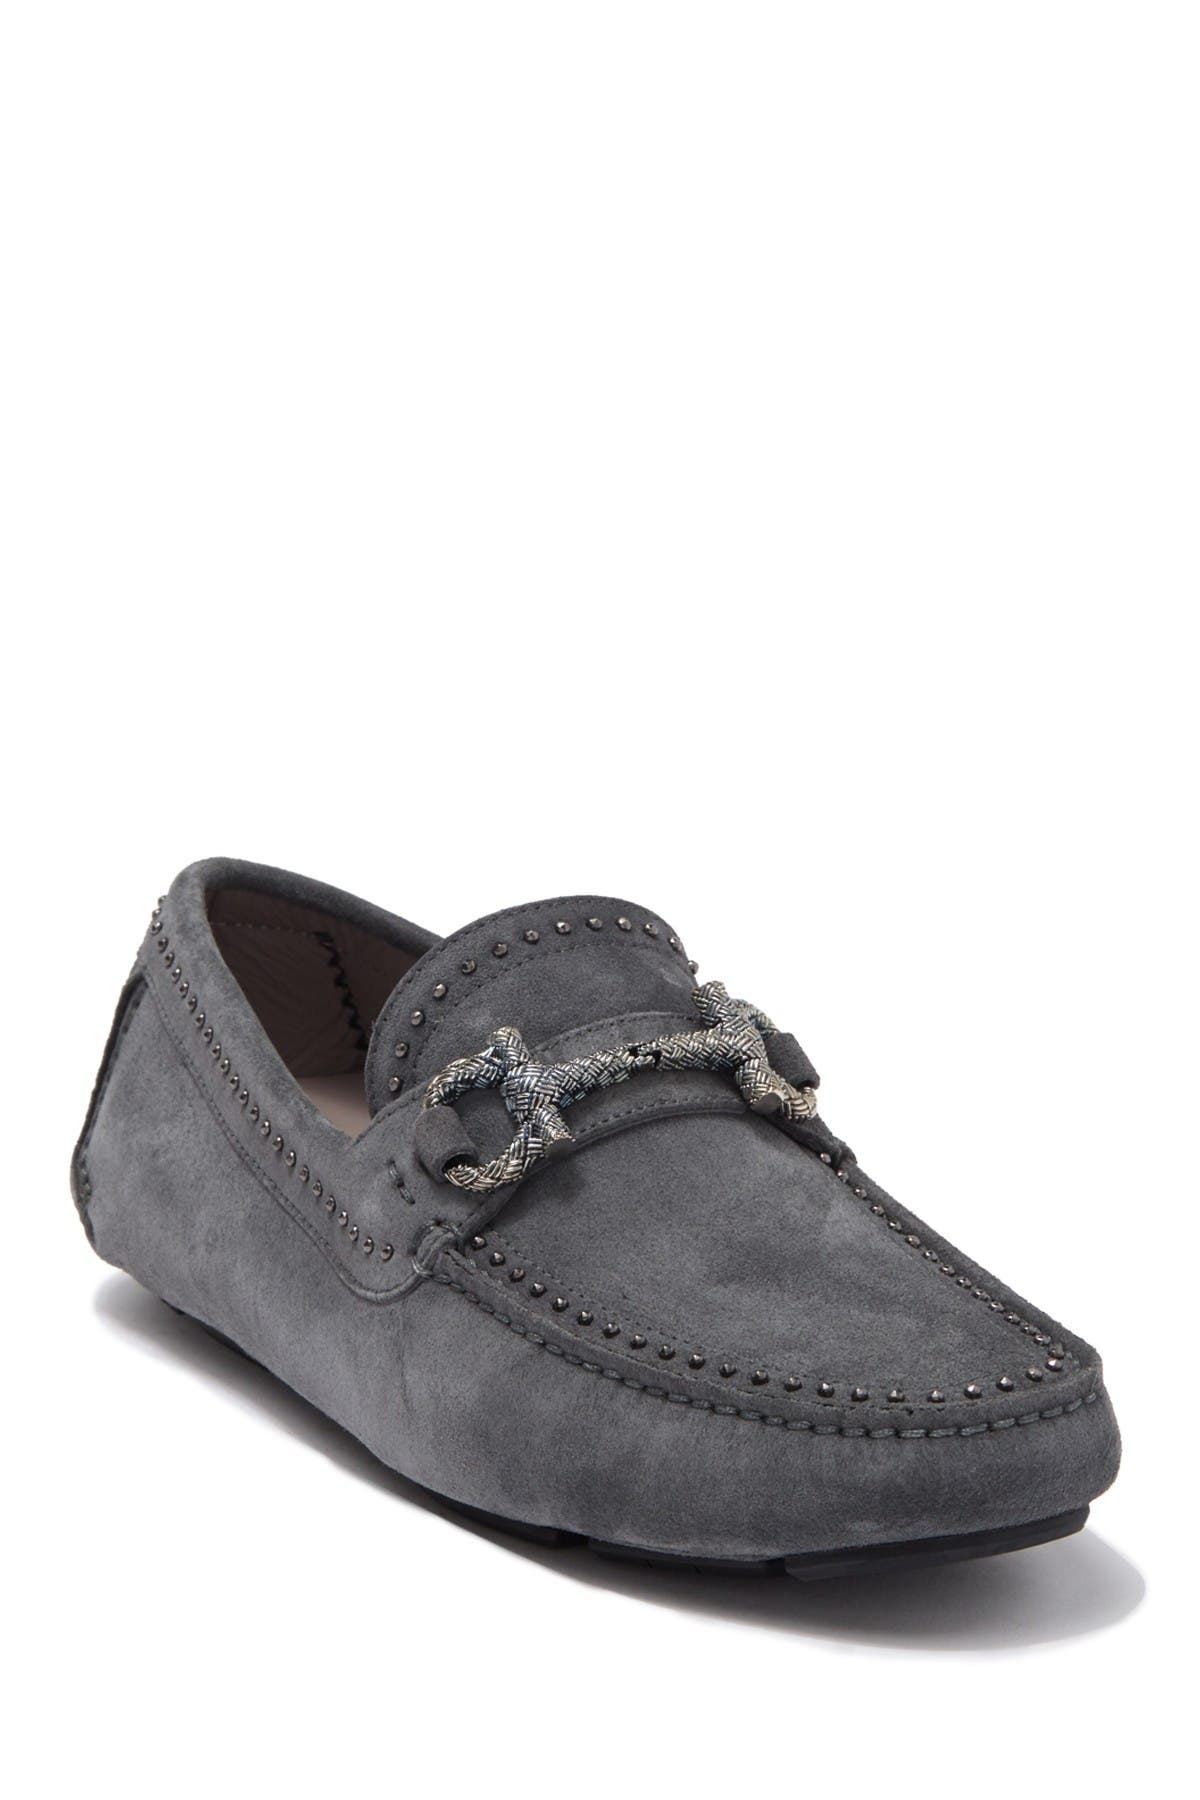 Image of Salvatore Ferragamo Horsebit Studded Leather Loafer